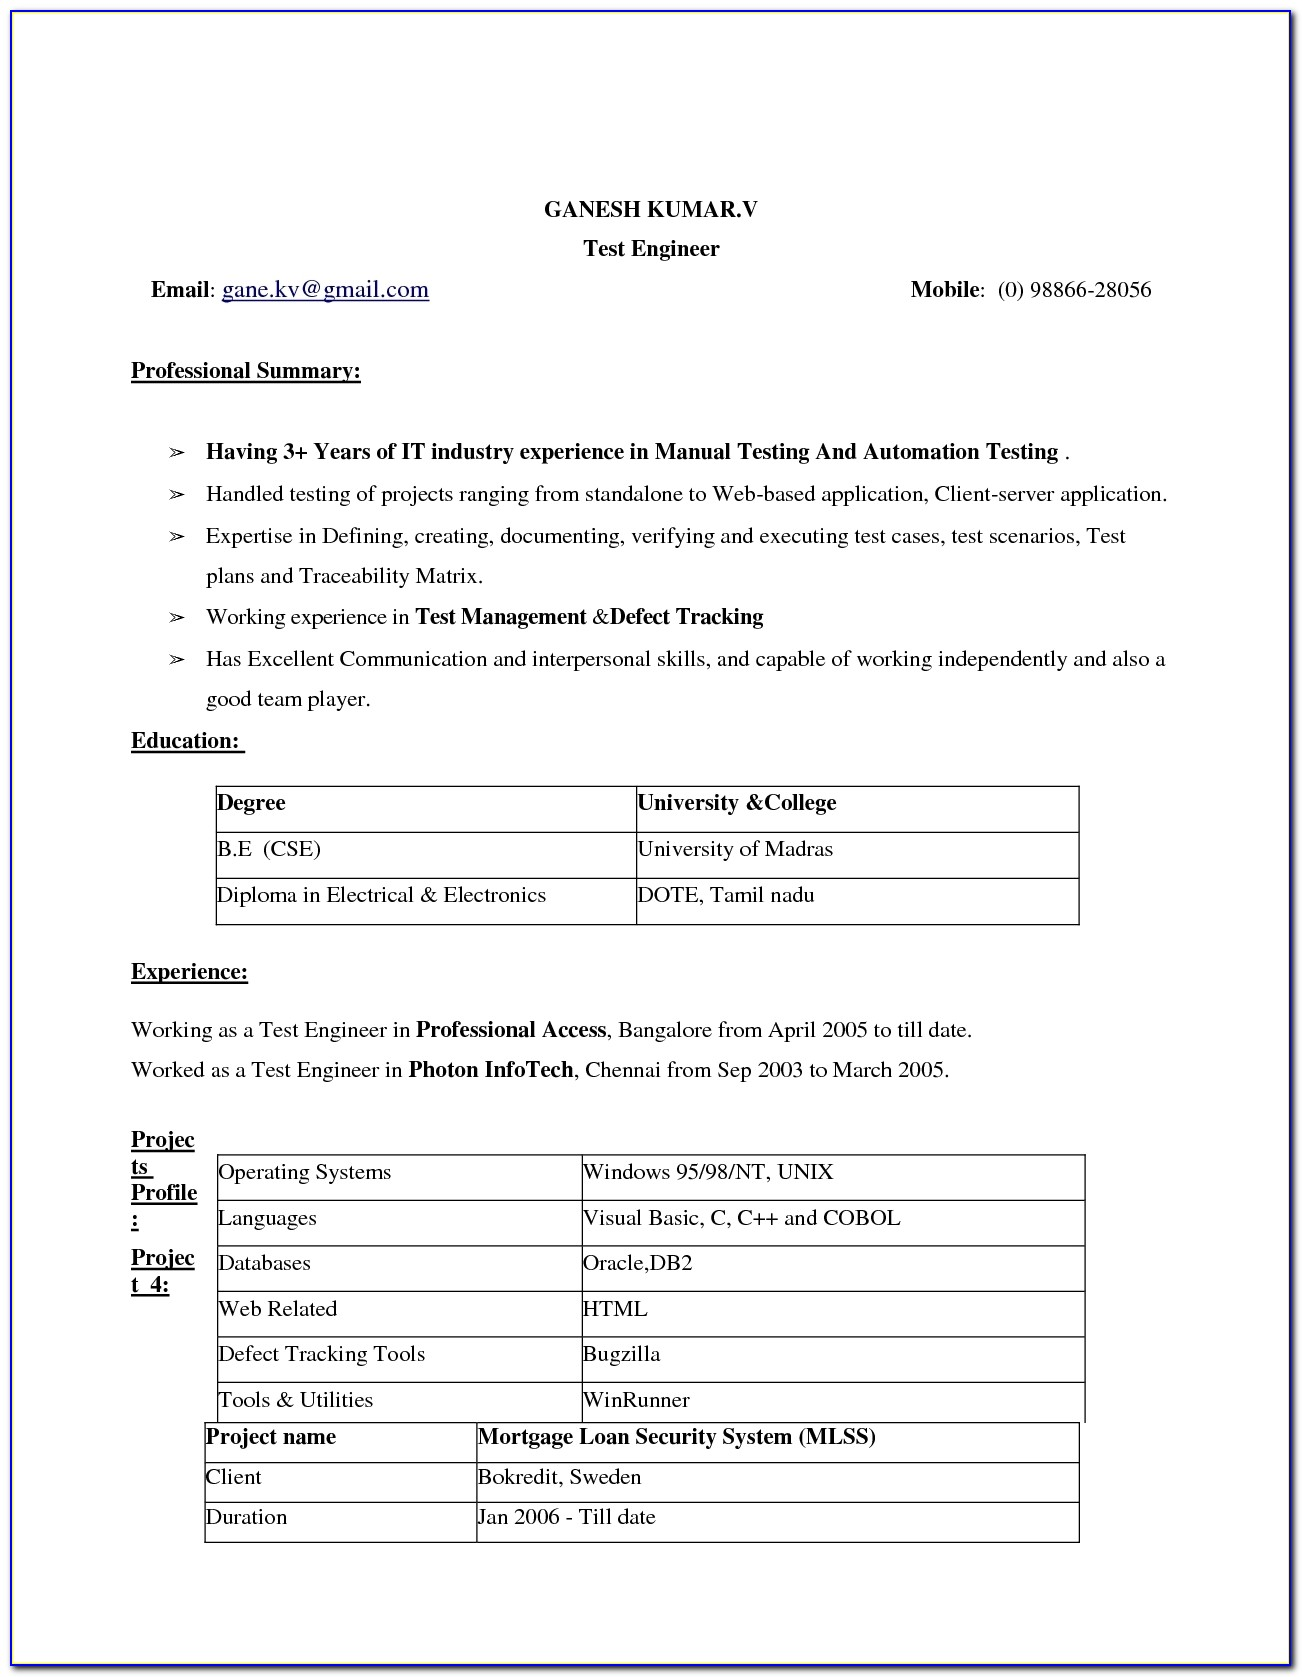 Resume Templates Microsoft Word 2017 Make Resume Within Resume Template Microsoft Word 2017